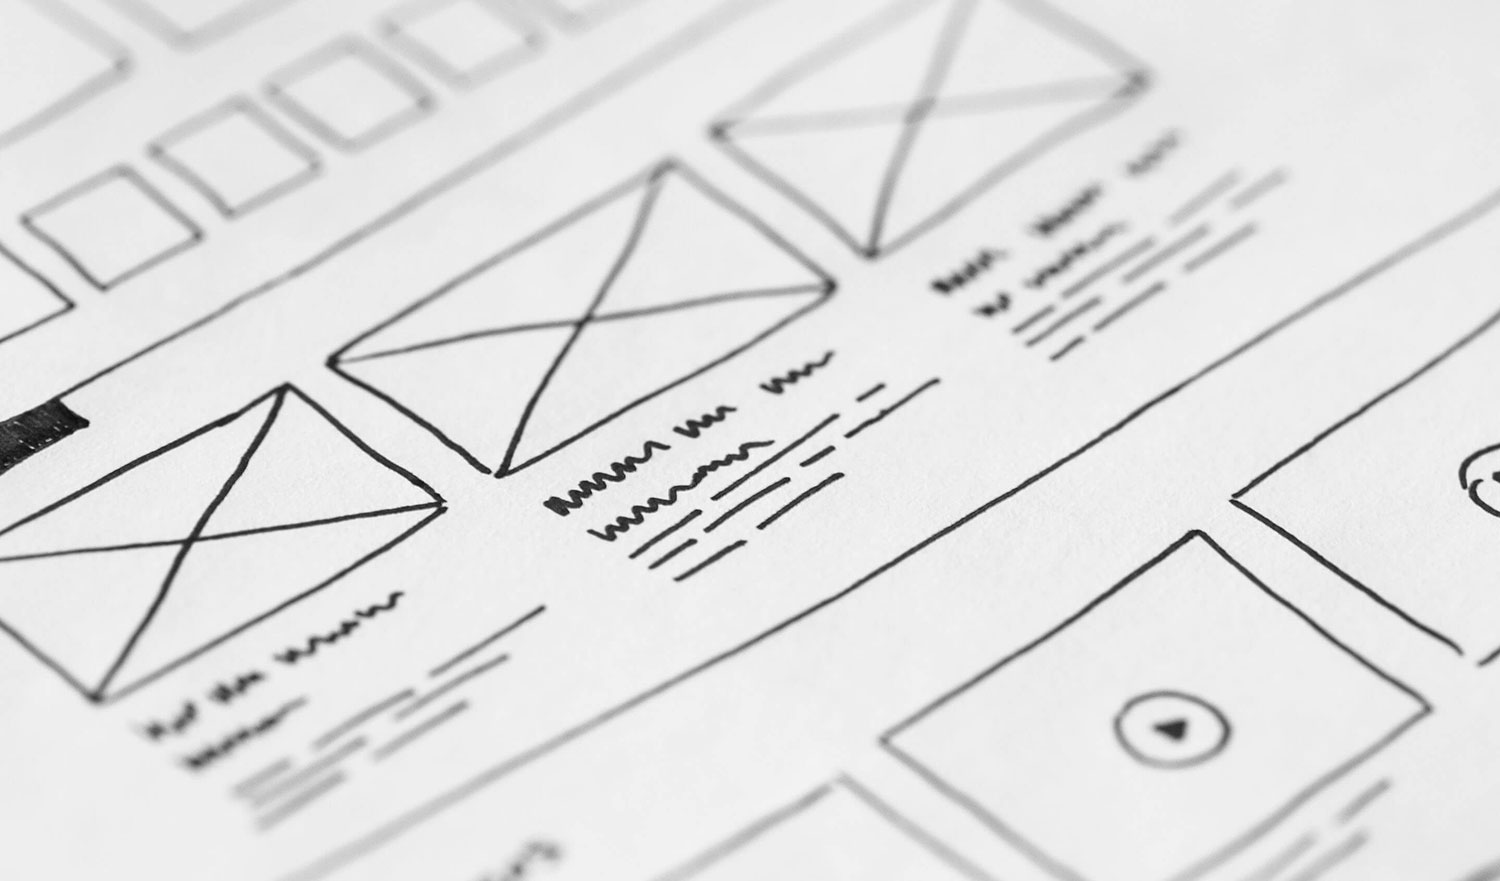 UX Design sketches of wireframes for a website's information architecture